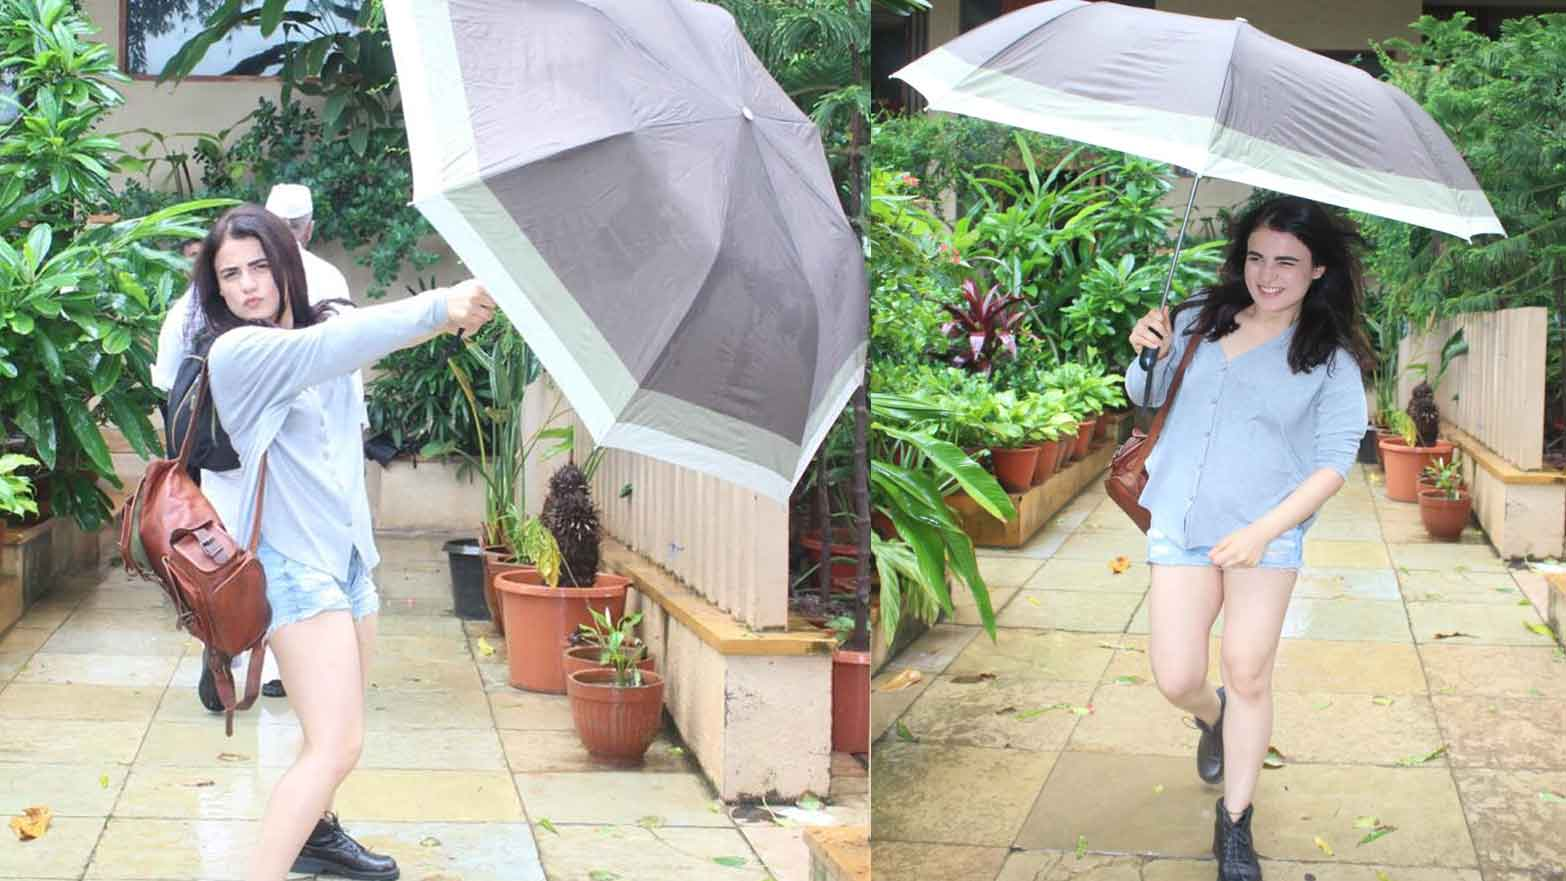 Radhika Madan is up for some mischief in rain, strikes funky poses with umbrella